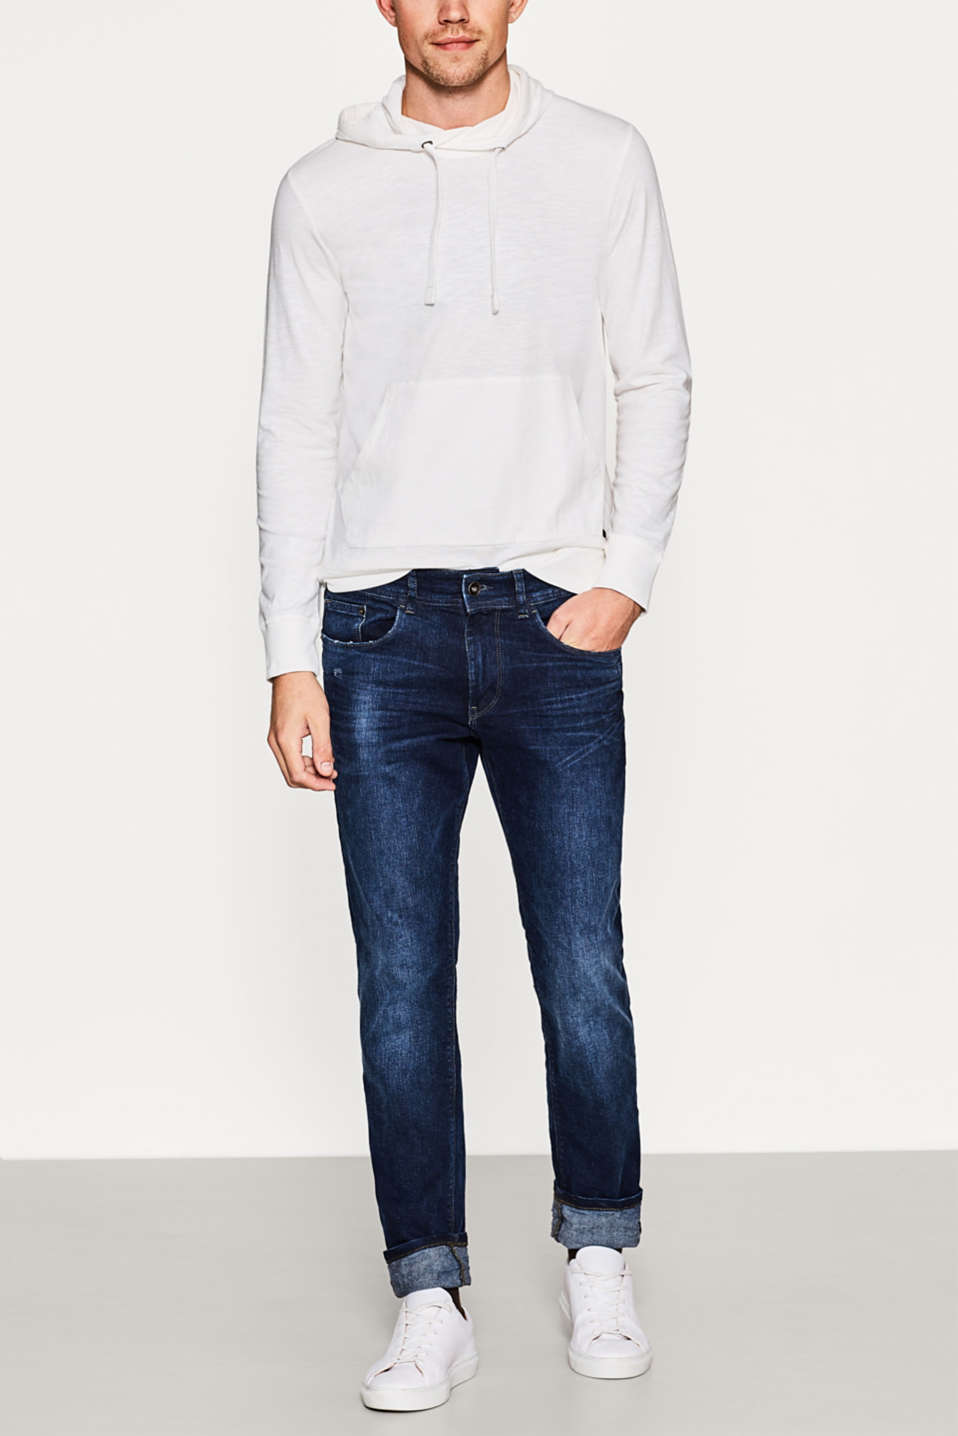 Esprit - Jean 5 poches en denim stretch